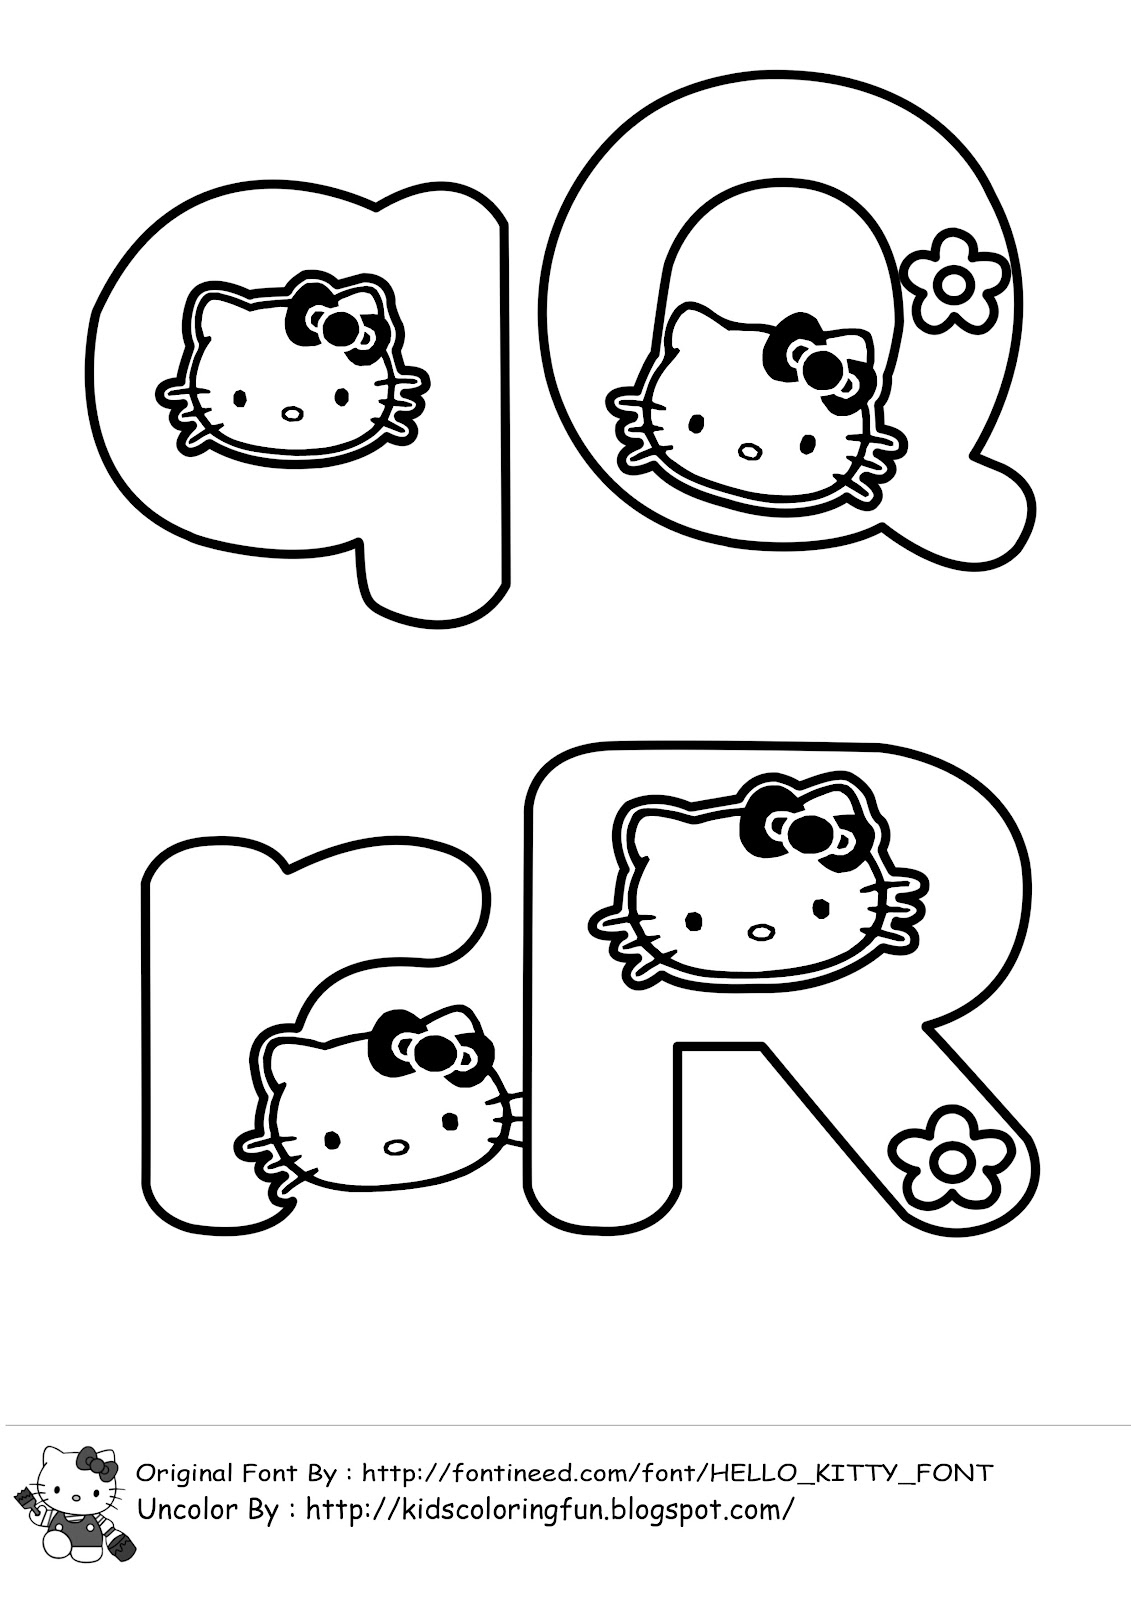 Free Printable Hello Kitty Alphabet Letters - Best Of Alphabet - Free Printable Hello Kitty Alphabet Letters